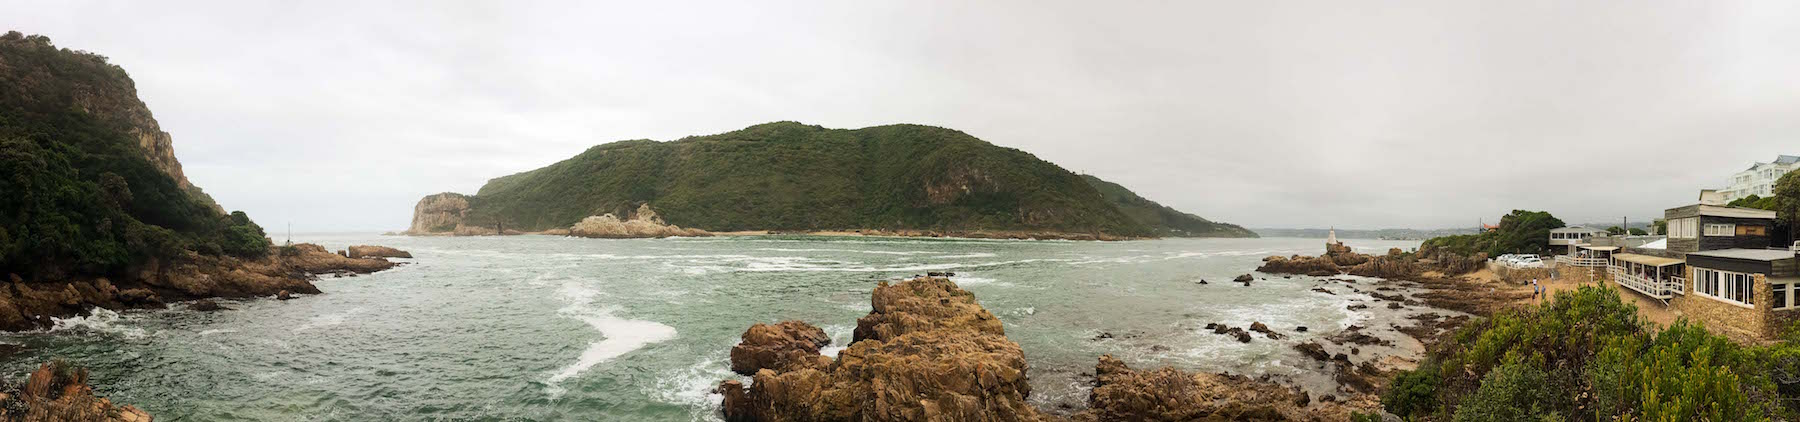 The Knysna Heads from East Head Cafe